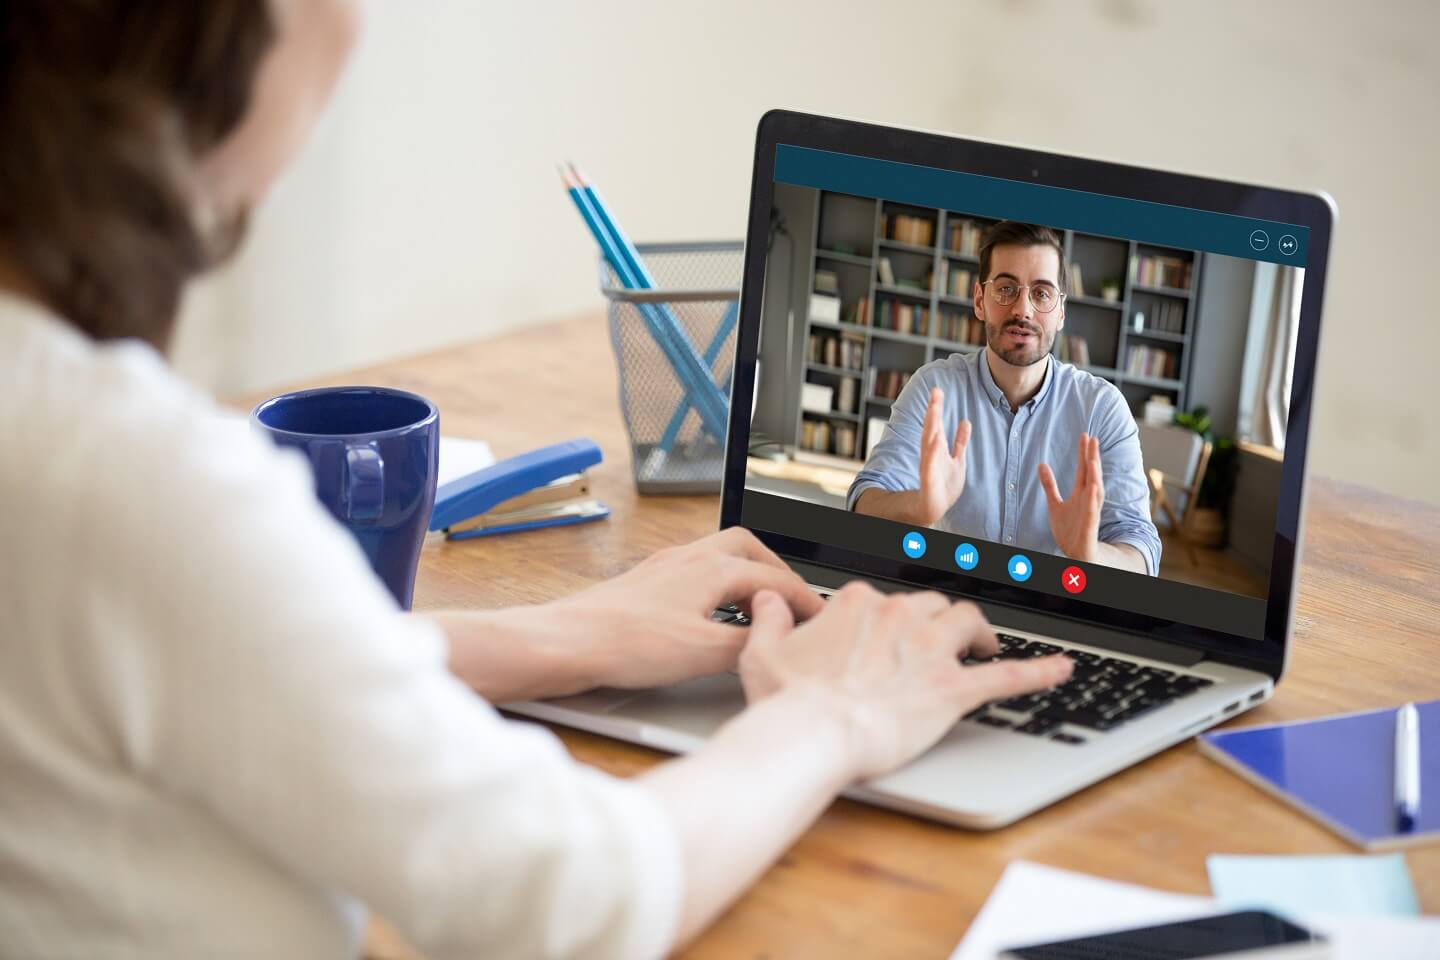 A woman on her laptop video chatting with a man in a blue shirt.